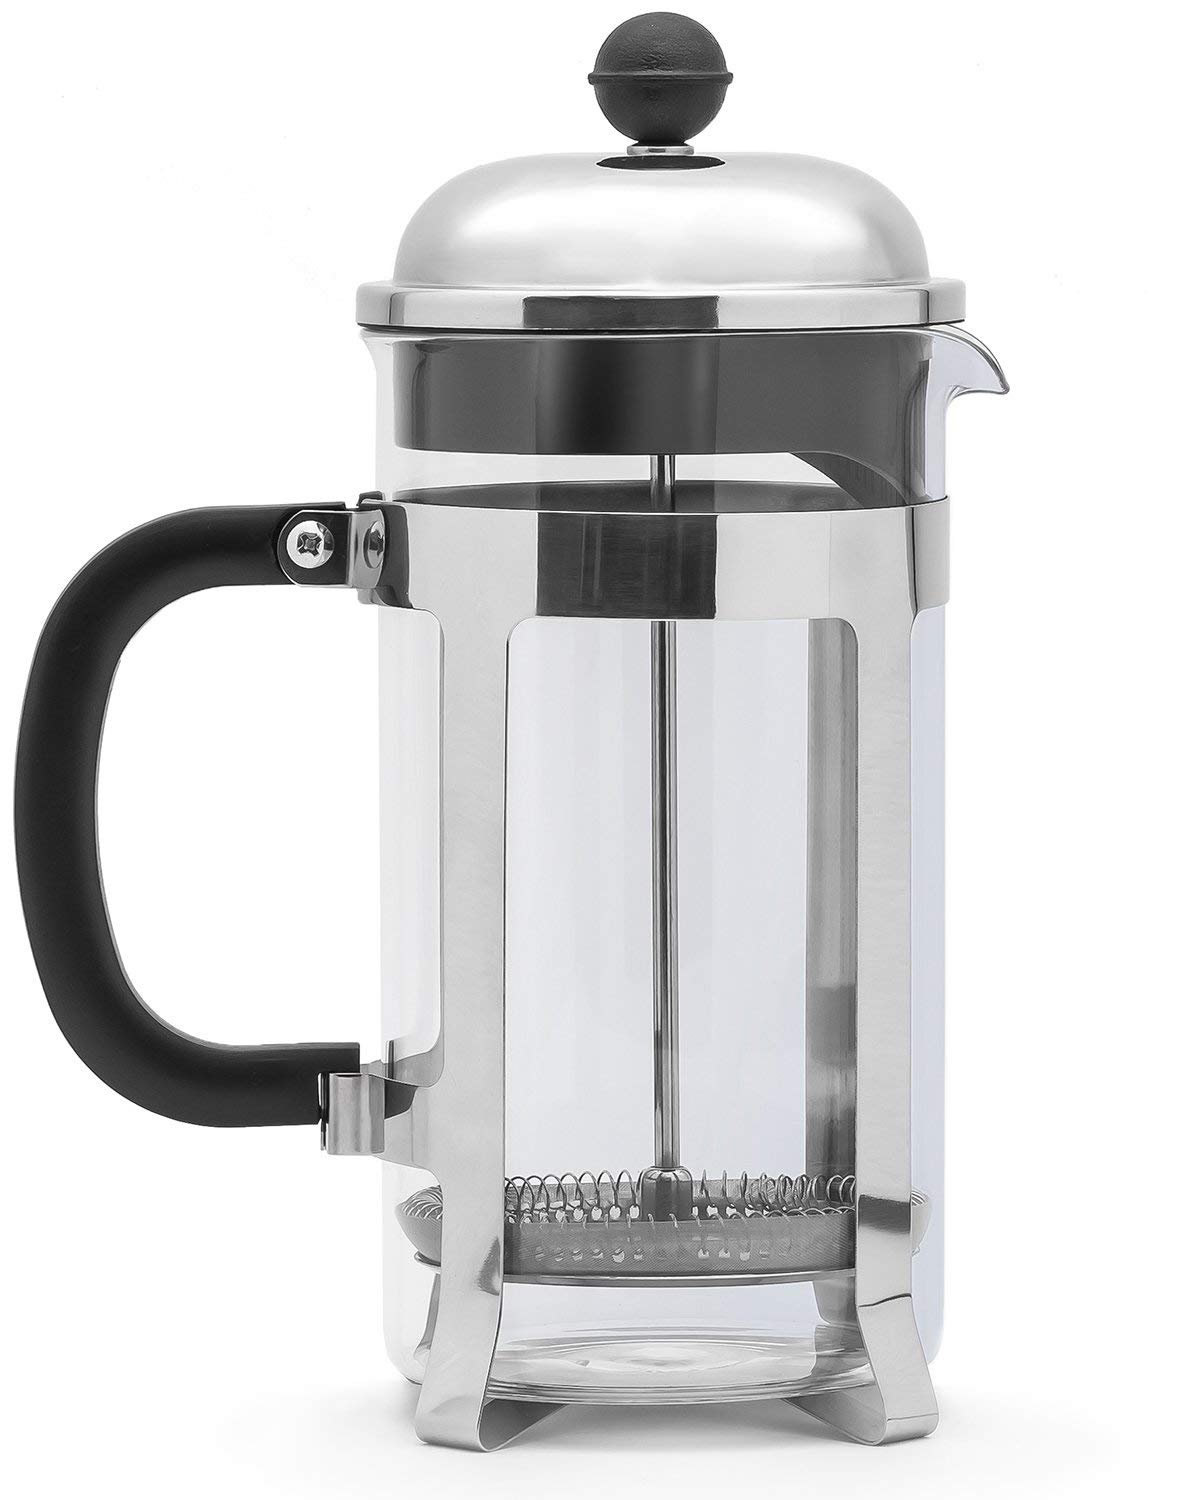 French Press Machine - Coffee Press - French Press Coffee Maker - French Press kit - French Press on sale - Stainless steel French Press - French Press set - French Press Large - Improved model 2018